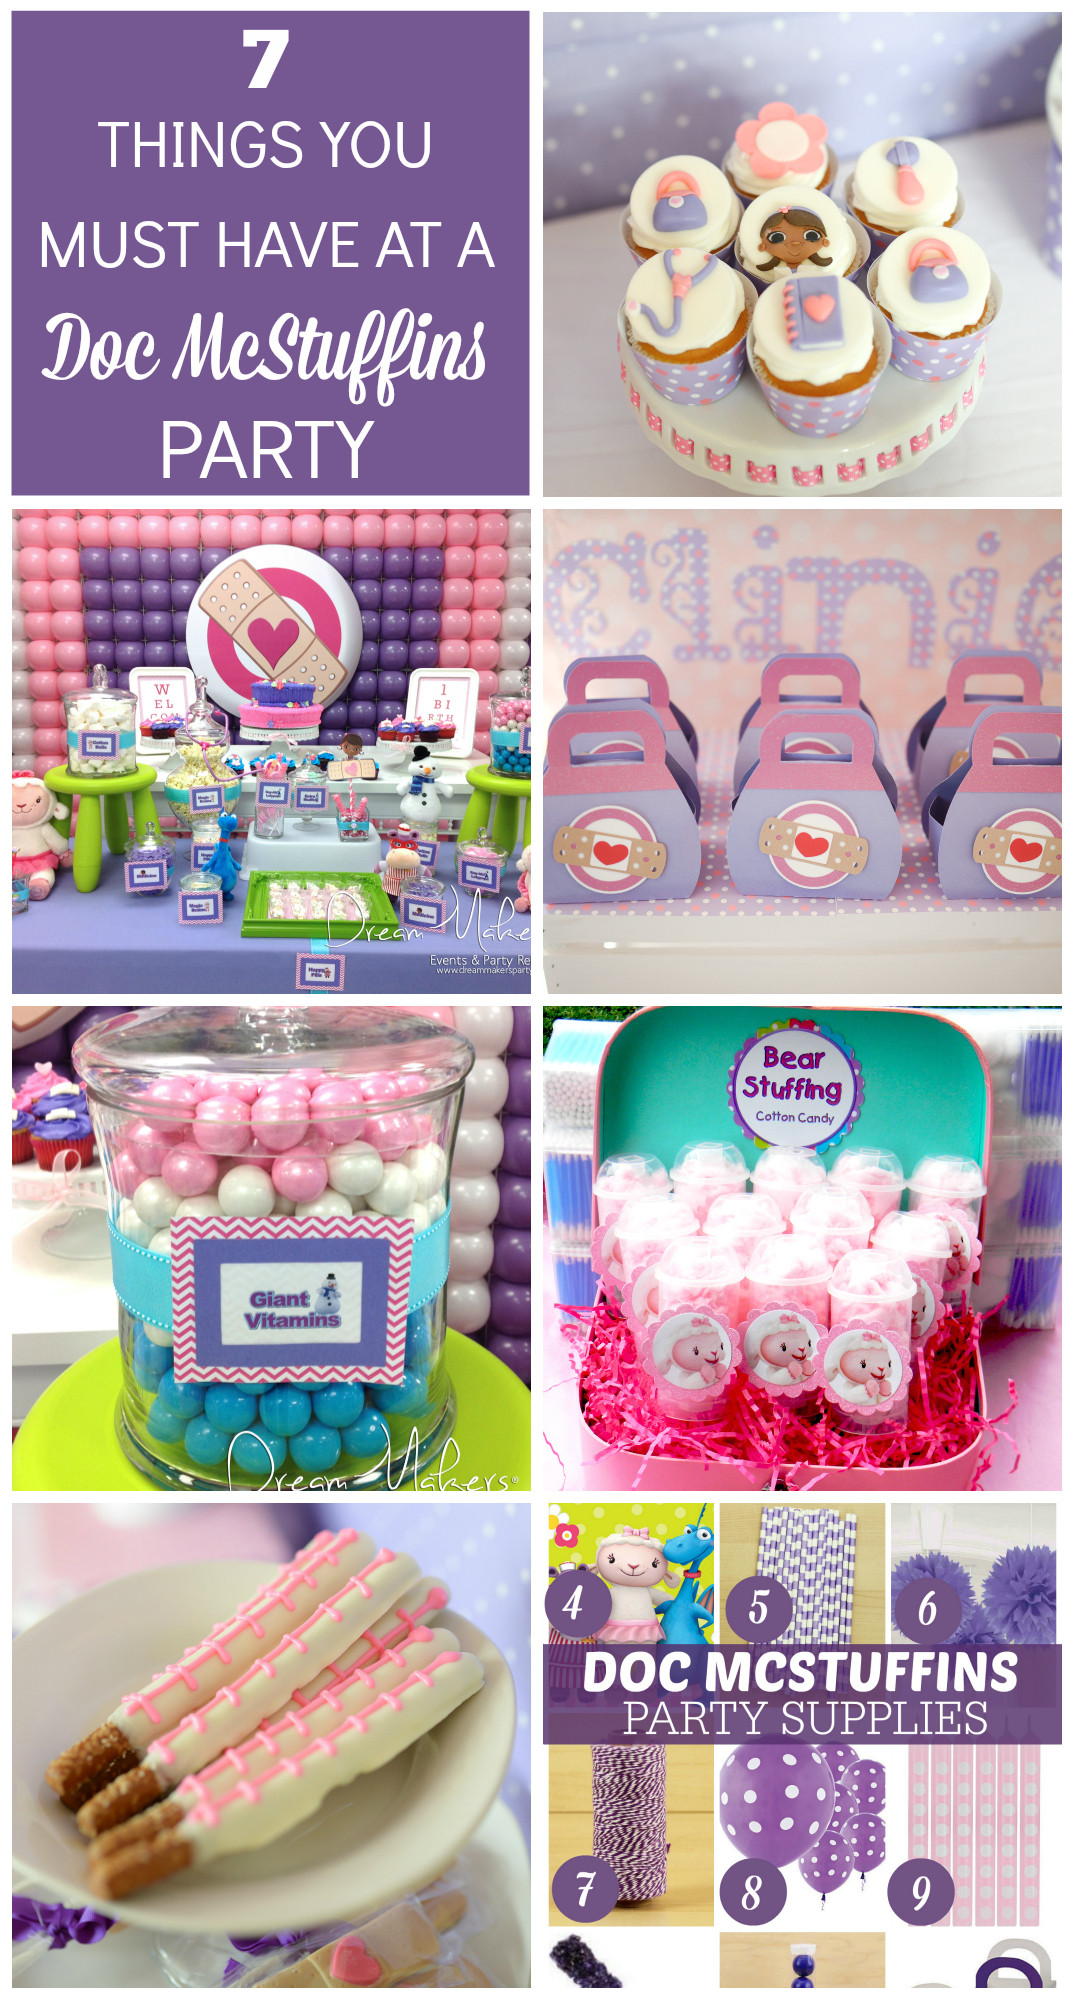 Best ideas about Doc Mcstuffins Birthday Party Ideas . Save or Pin 7 Things You Must Have at a Doc McStuffins Birthday Party Now.